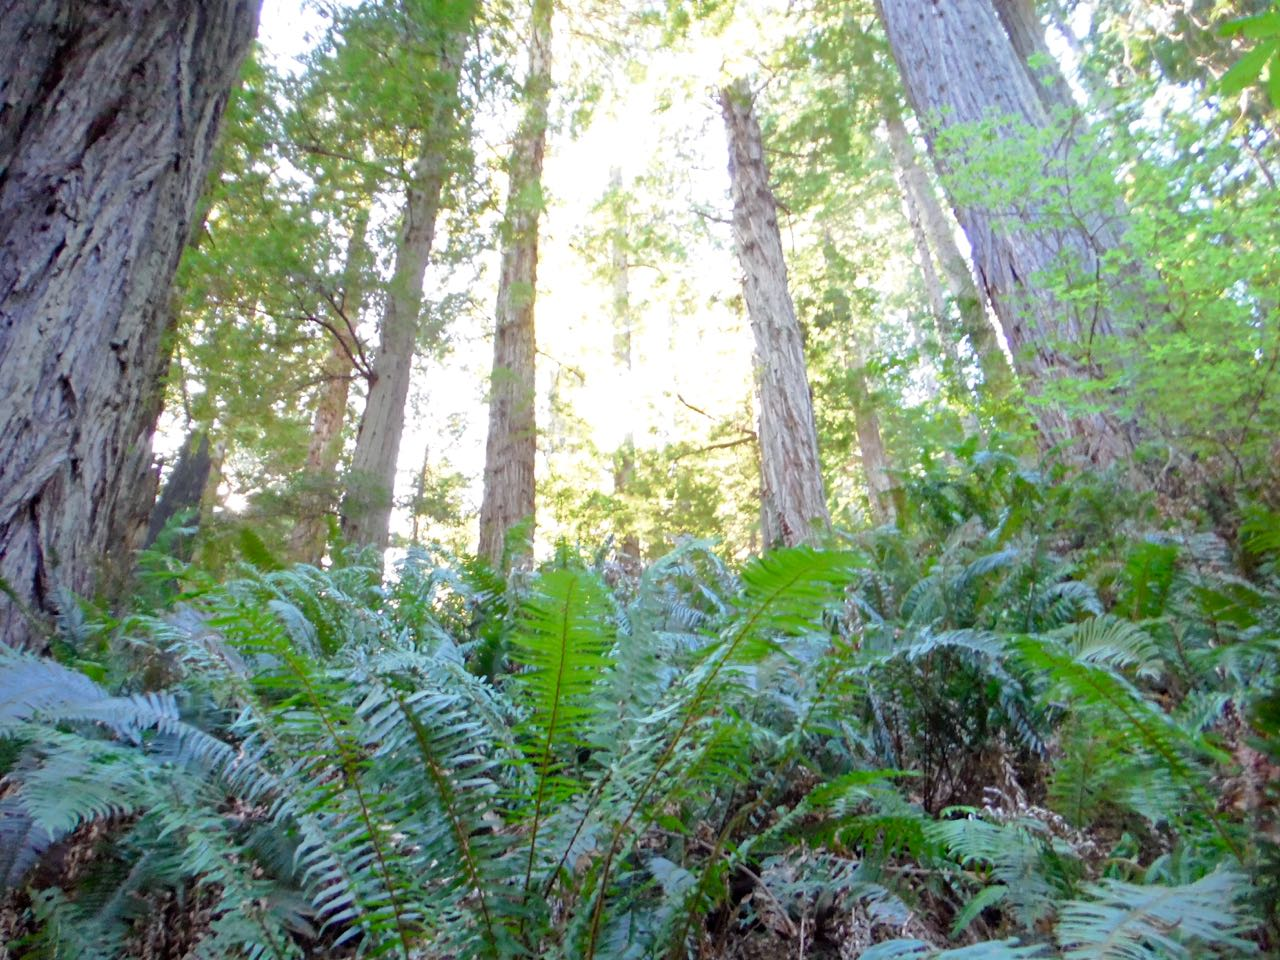 Redwoods 2017 10 08 237 Of 287